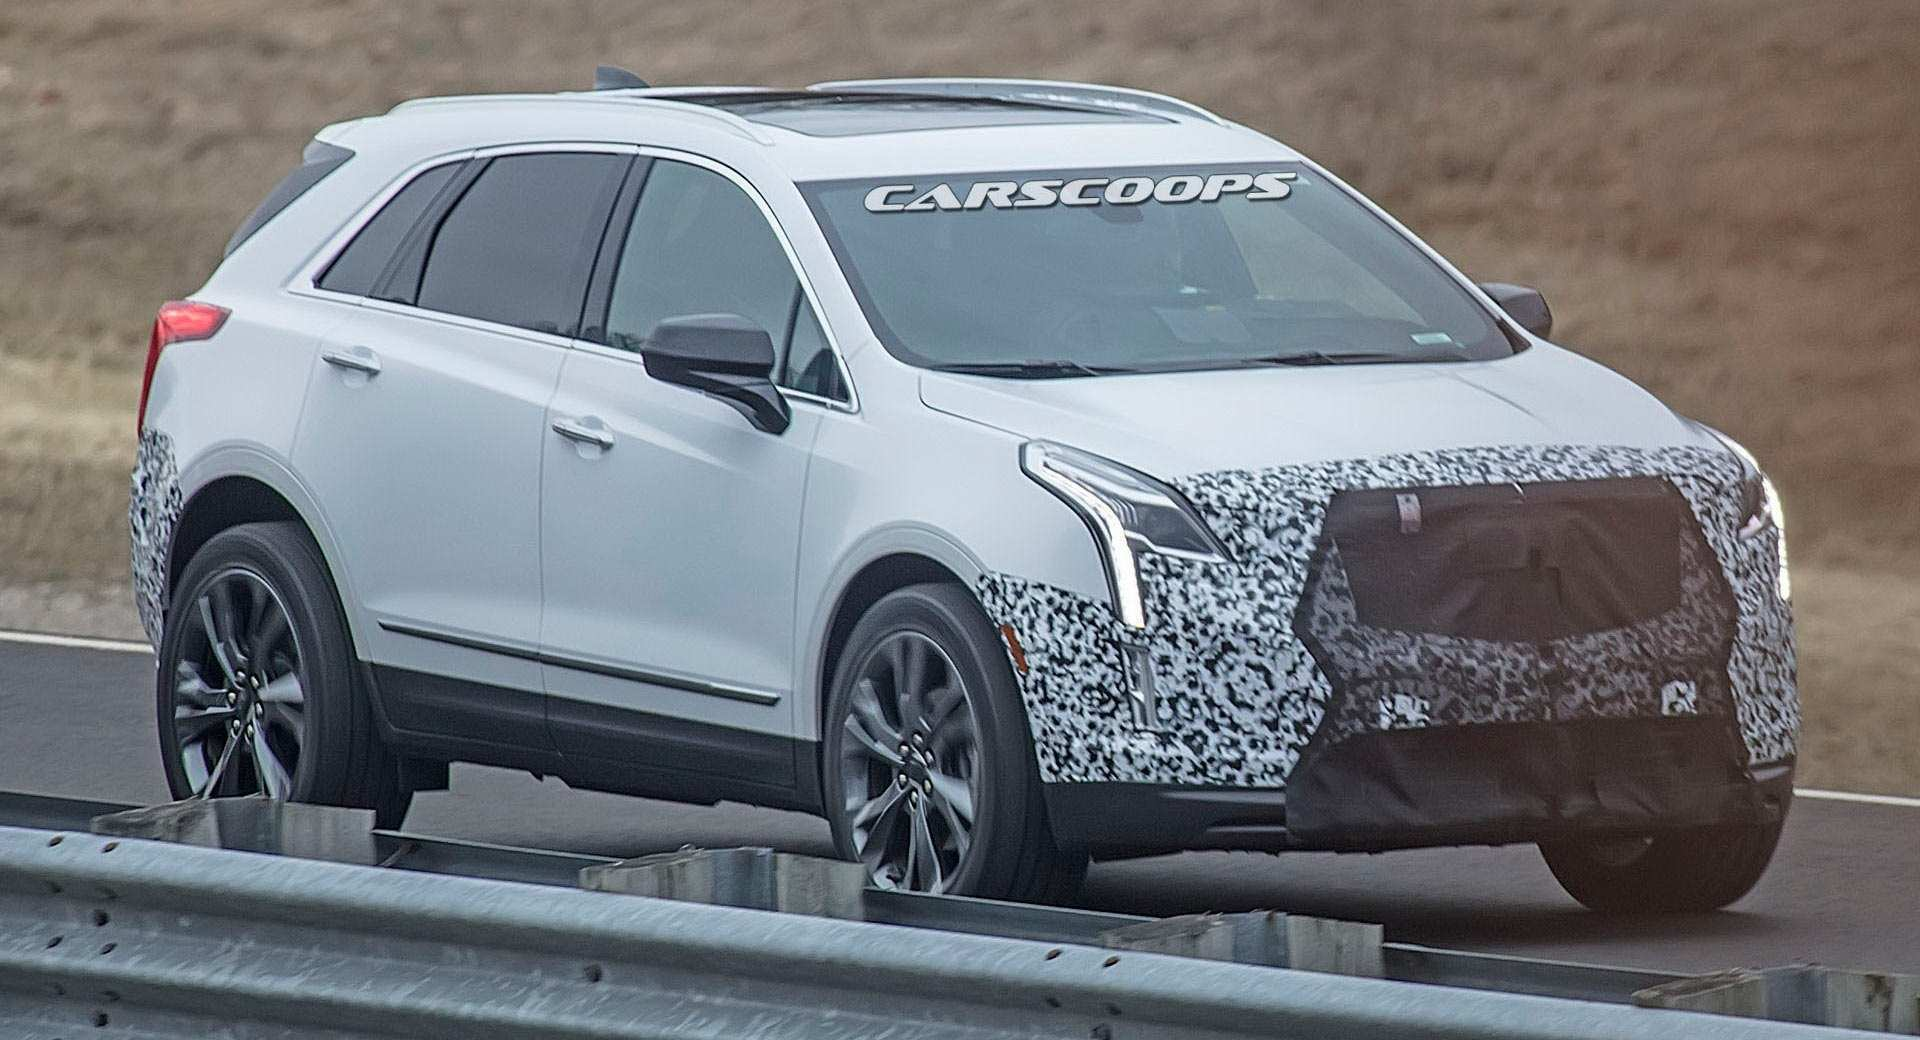 51 The Best 2019 Cadillac SRXSpy Photos Exterior And Interior